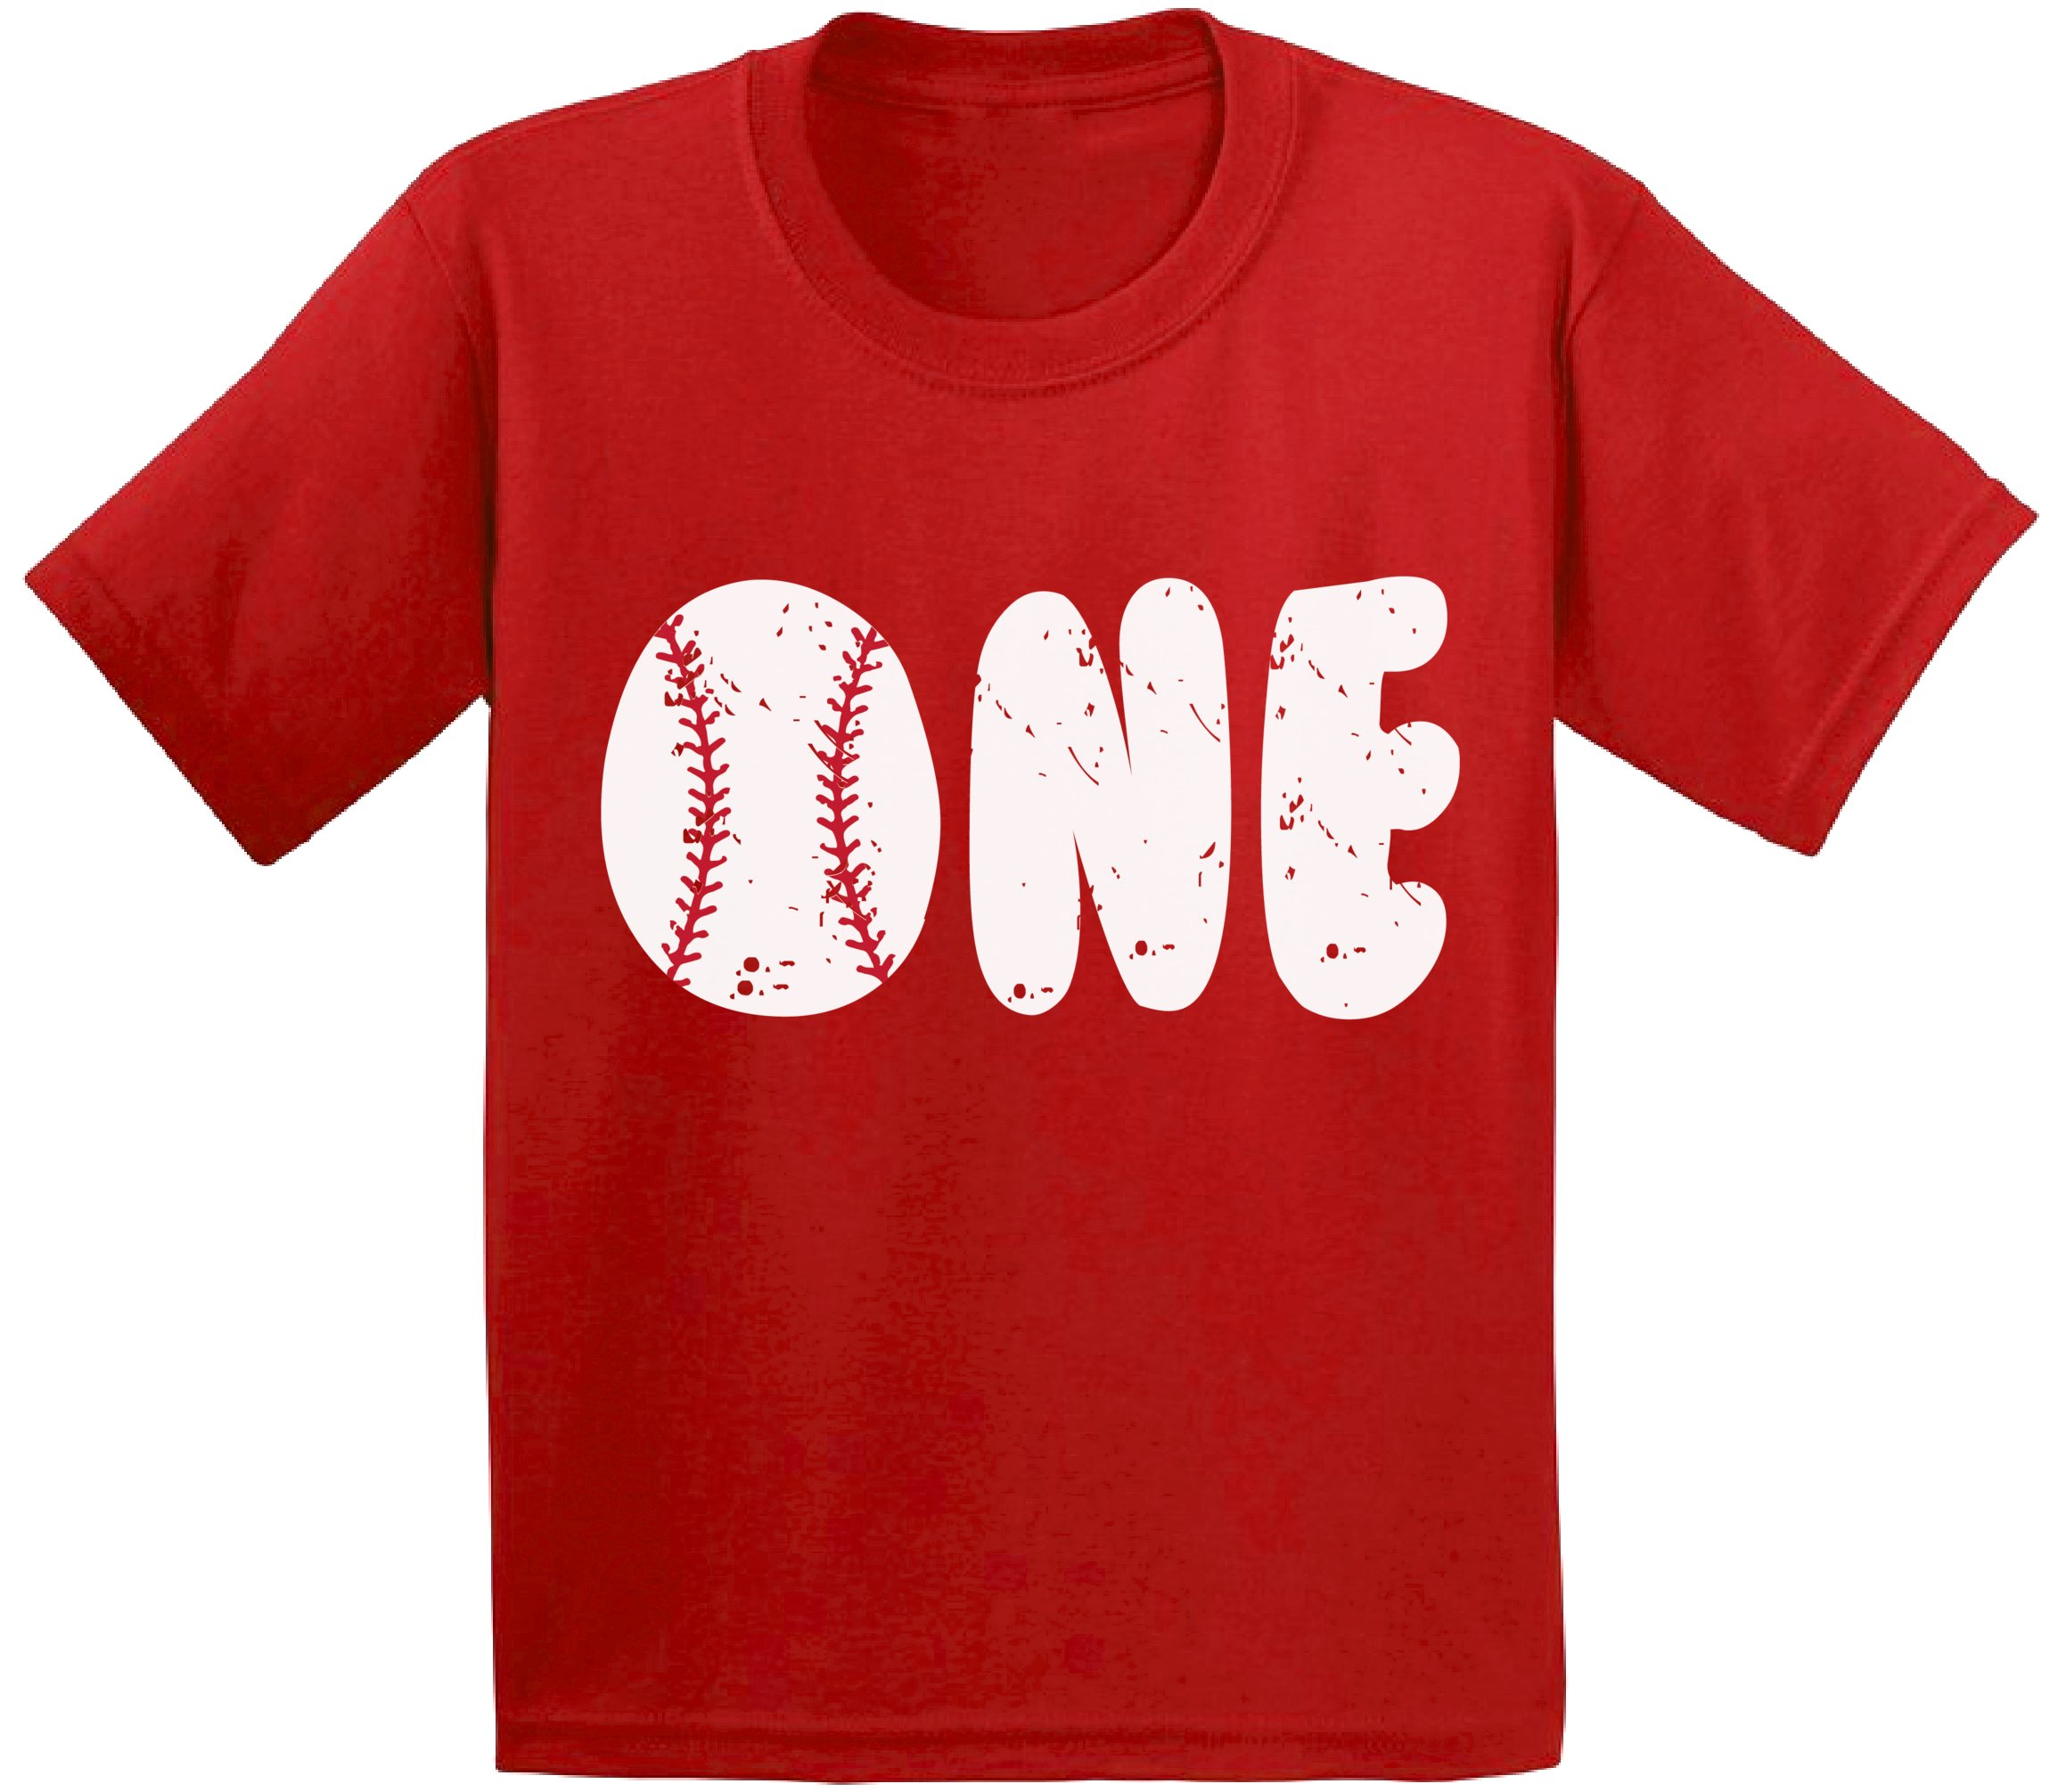 Awkward Styles Baseball Birthday Toddler T Shirts Infant First Party Baby Red 6M